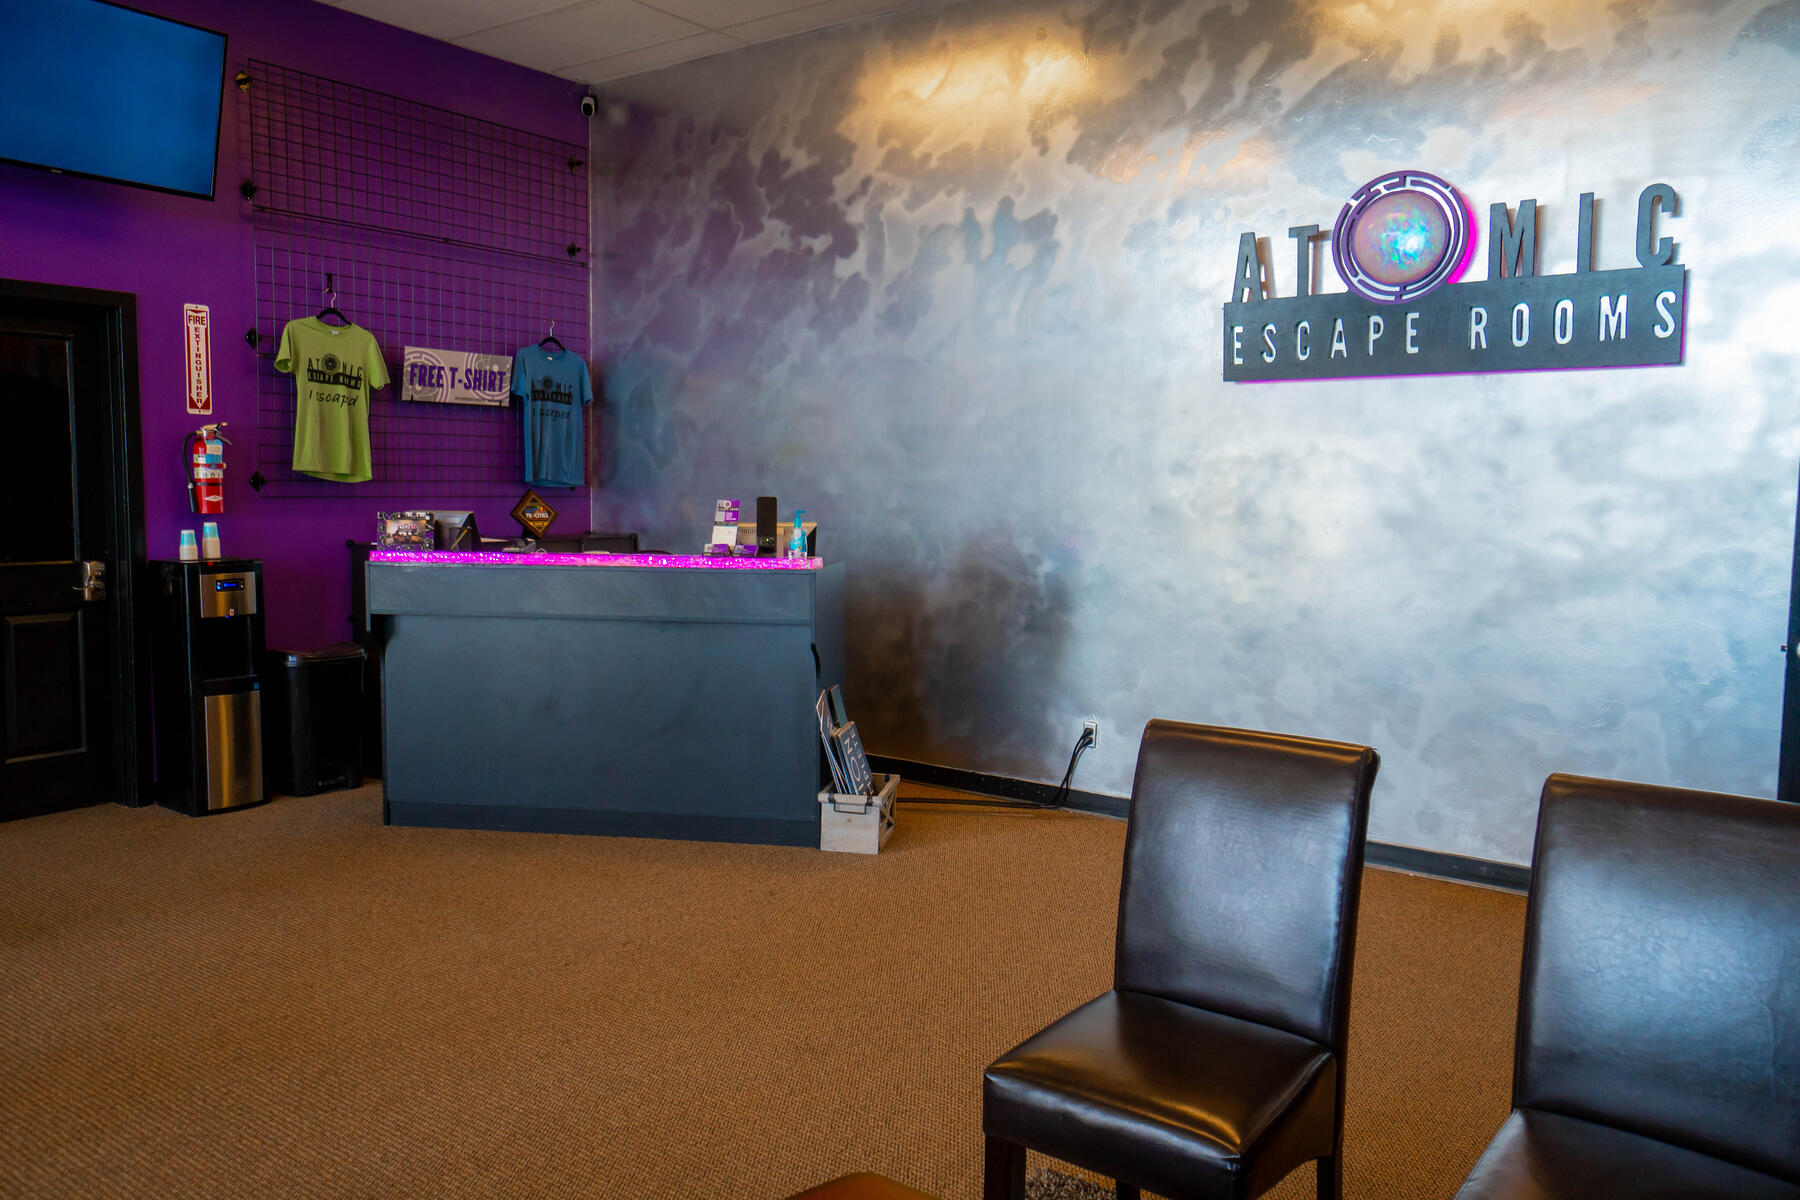 Lobby of escape room business